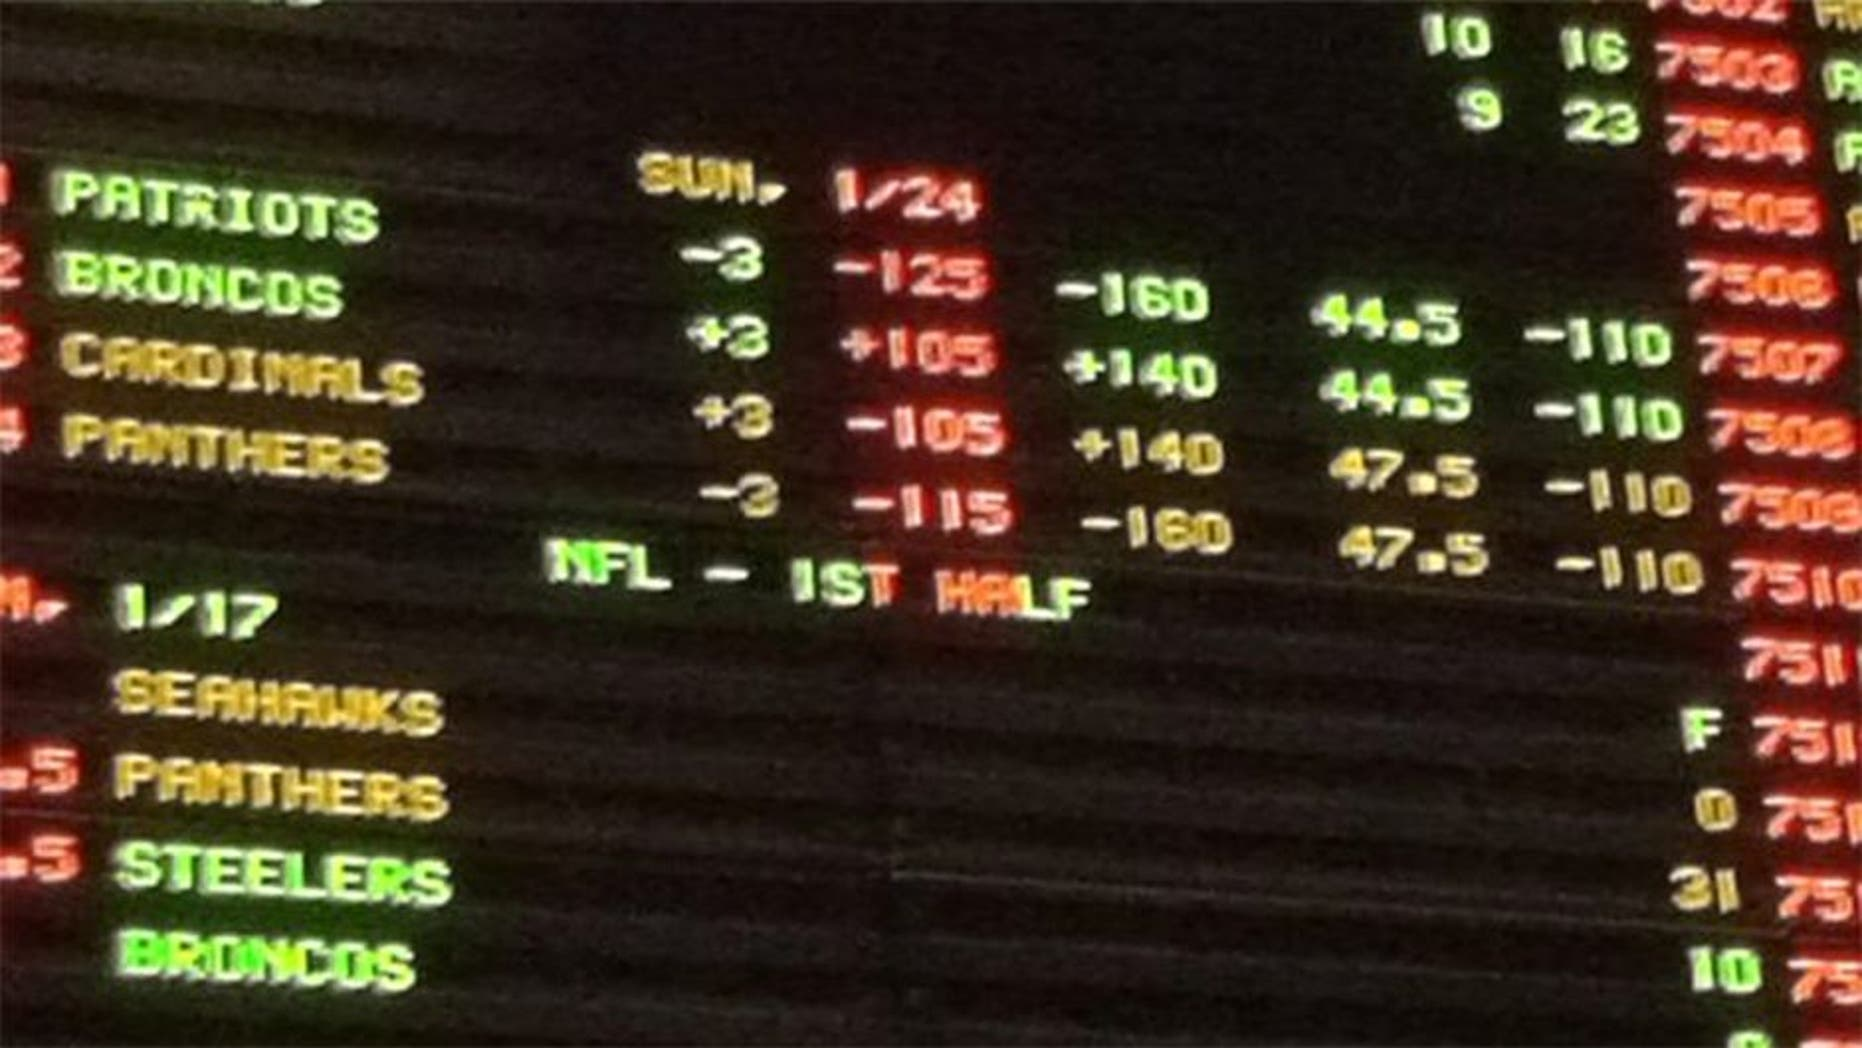 Vegas sportsbook takes $623K bet on the Panthers money line